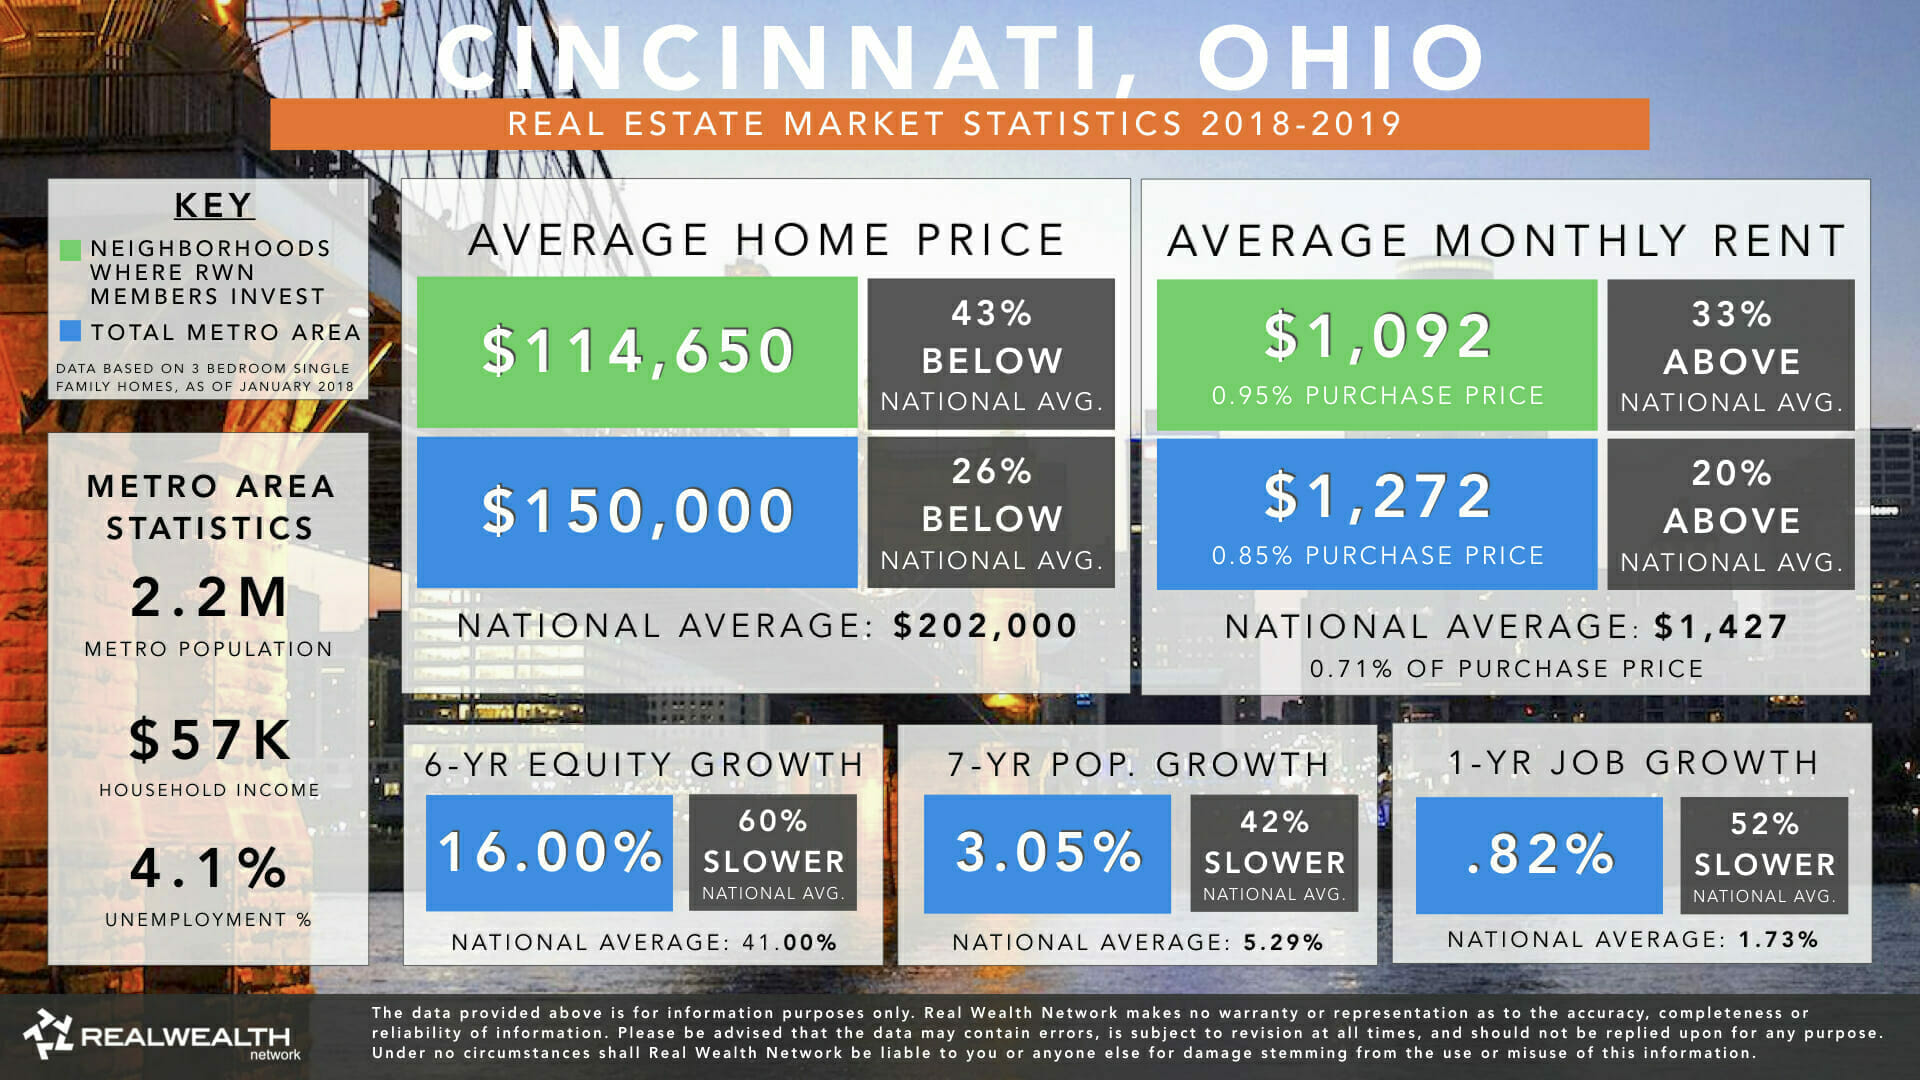 Cincinnati Real Estate Market Trends & Statistics 2018-2019